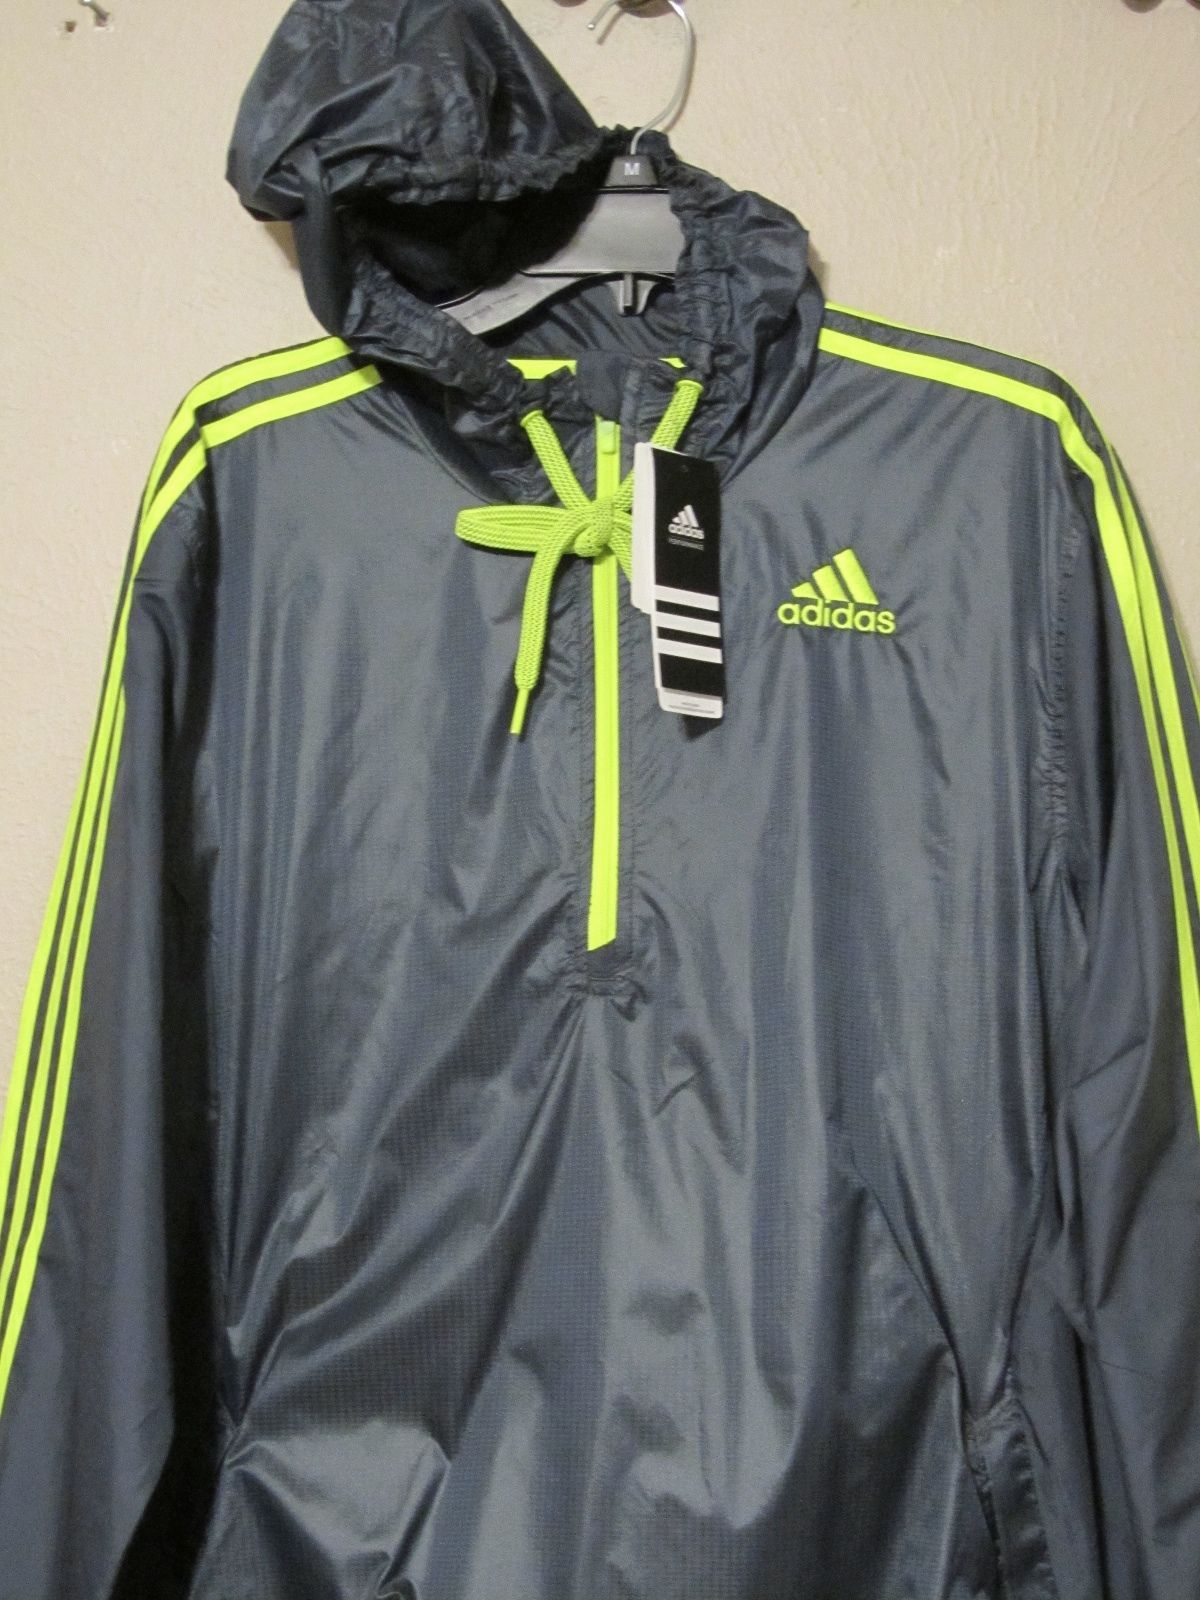 Primary image for Adidas Ultimate Wind Jacket 1/2 Zip Windbreaker Hoodie Mens Gray S-2XL Nwt $55